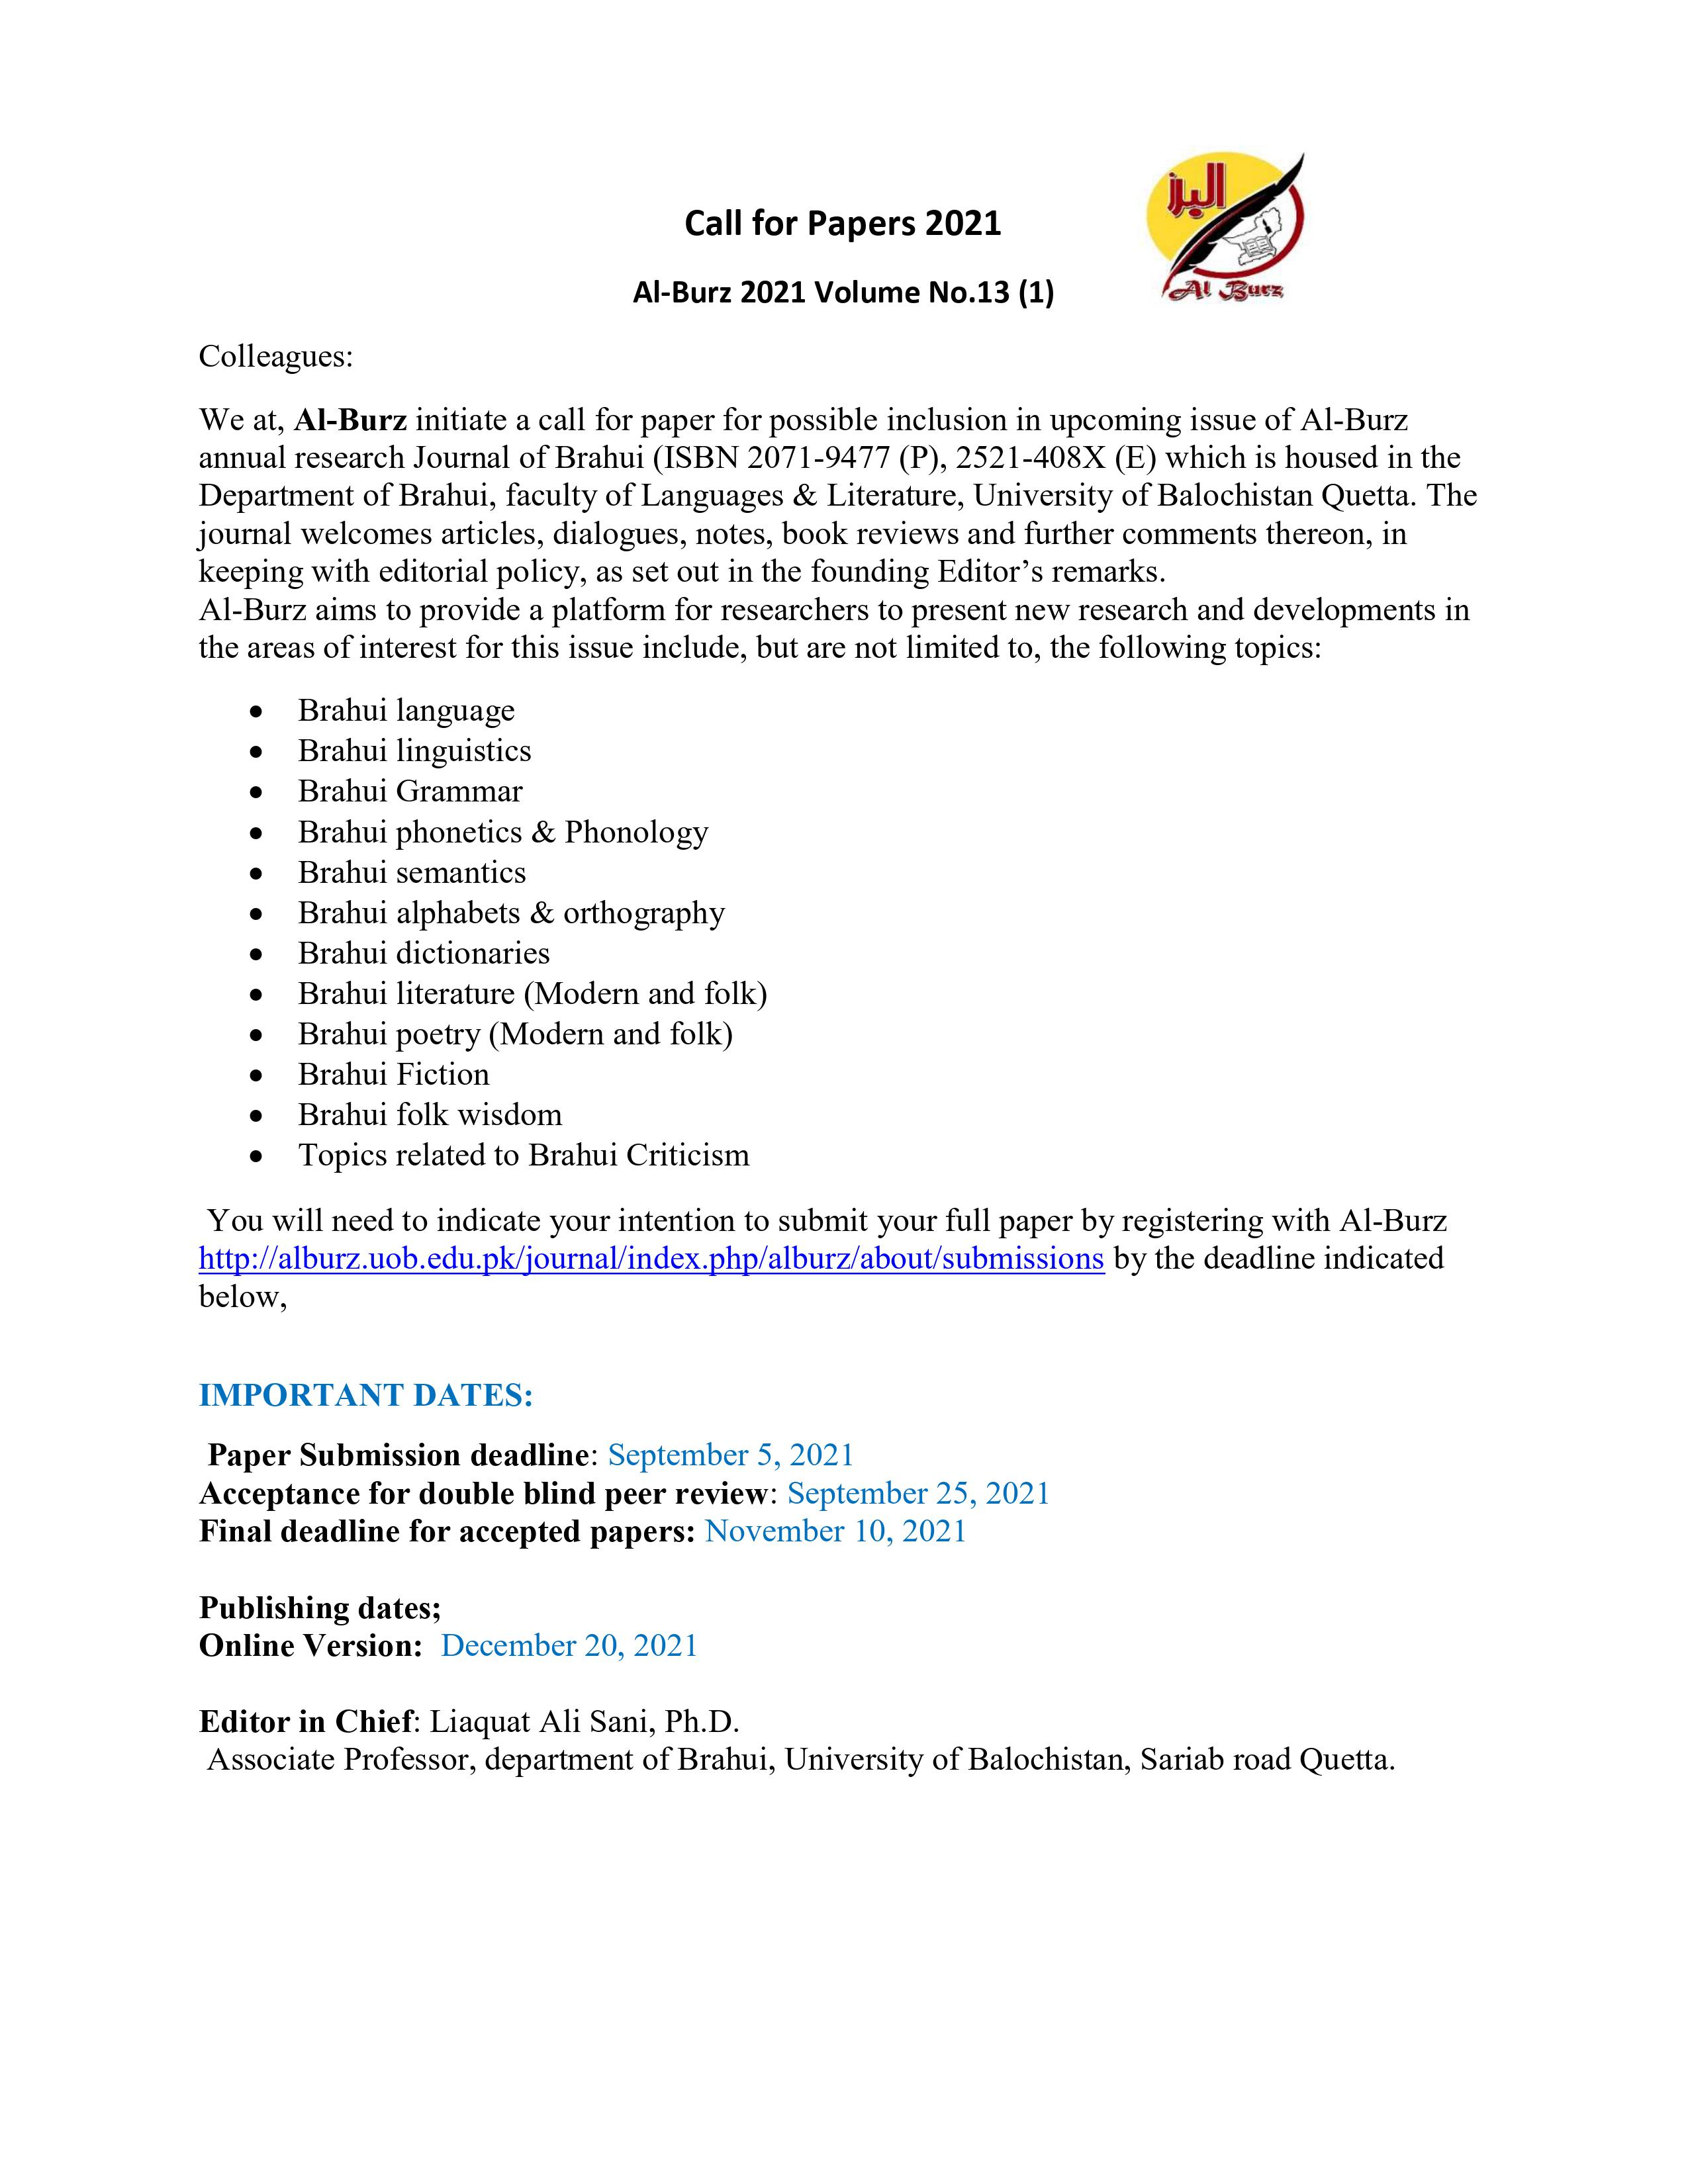 Call for Paper Vol-13(1)